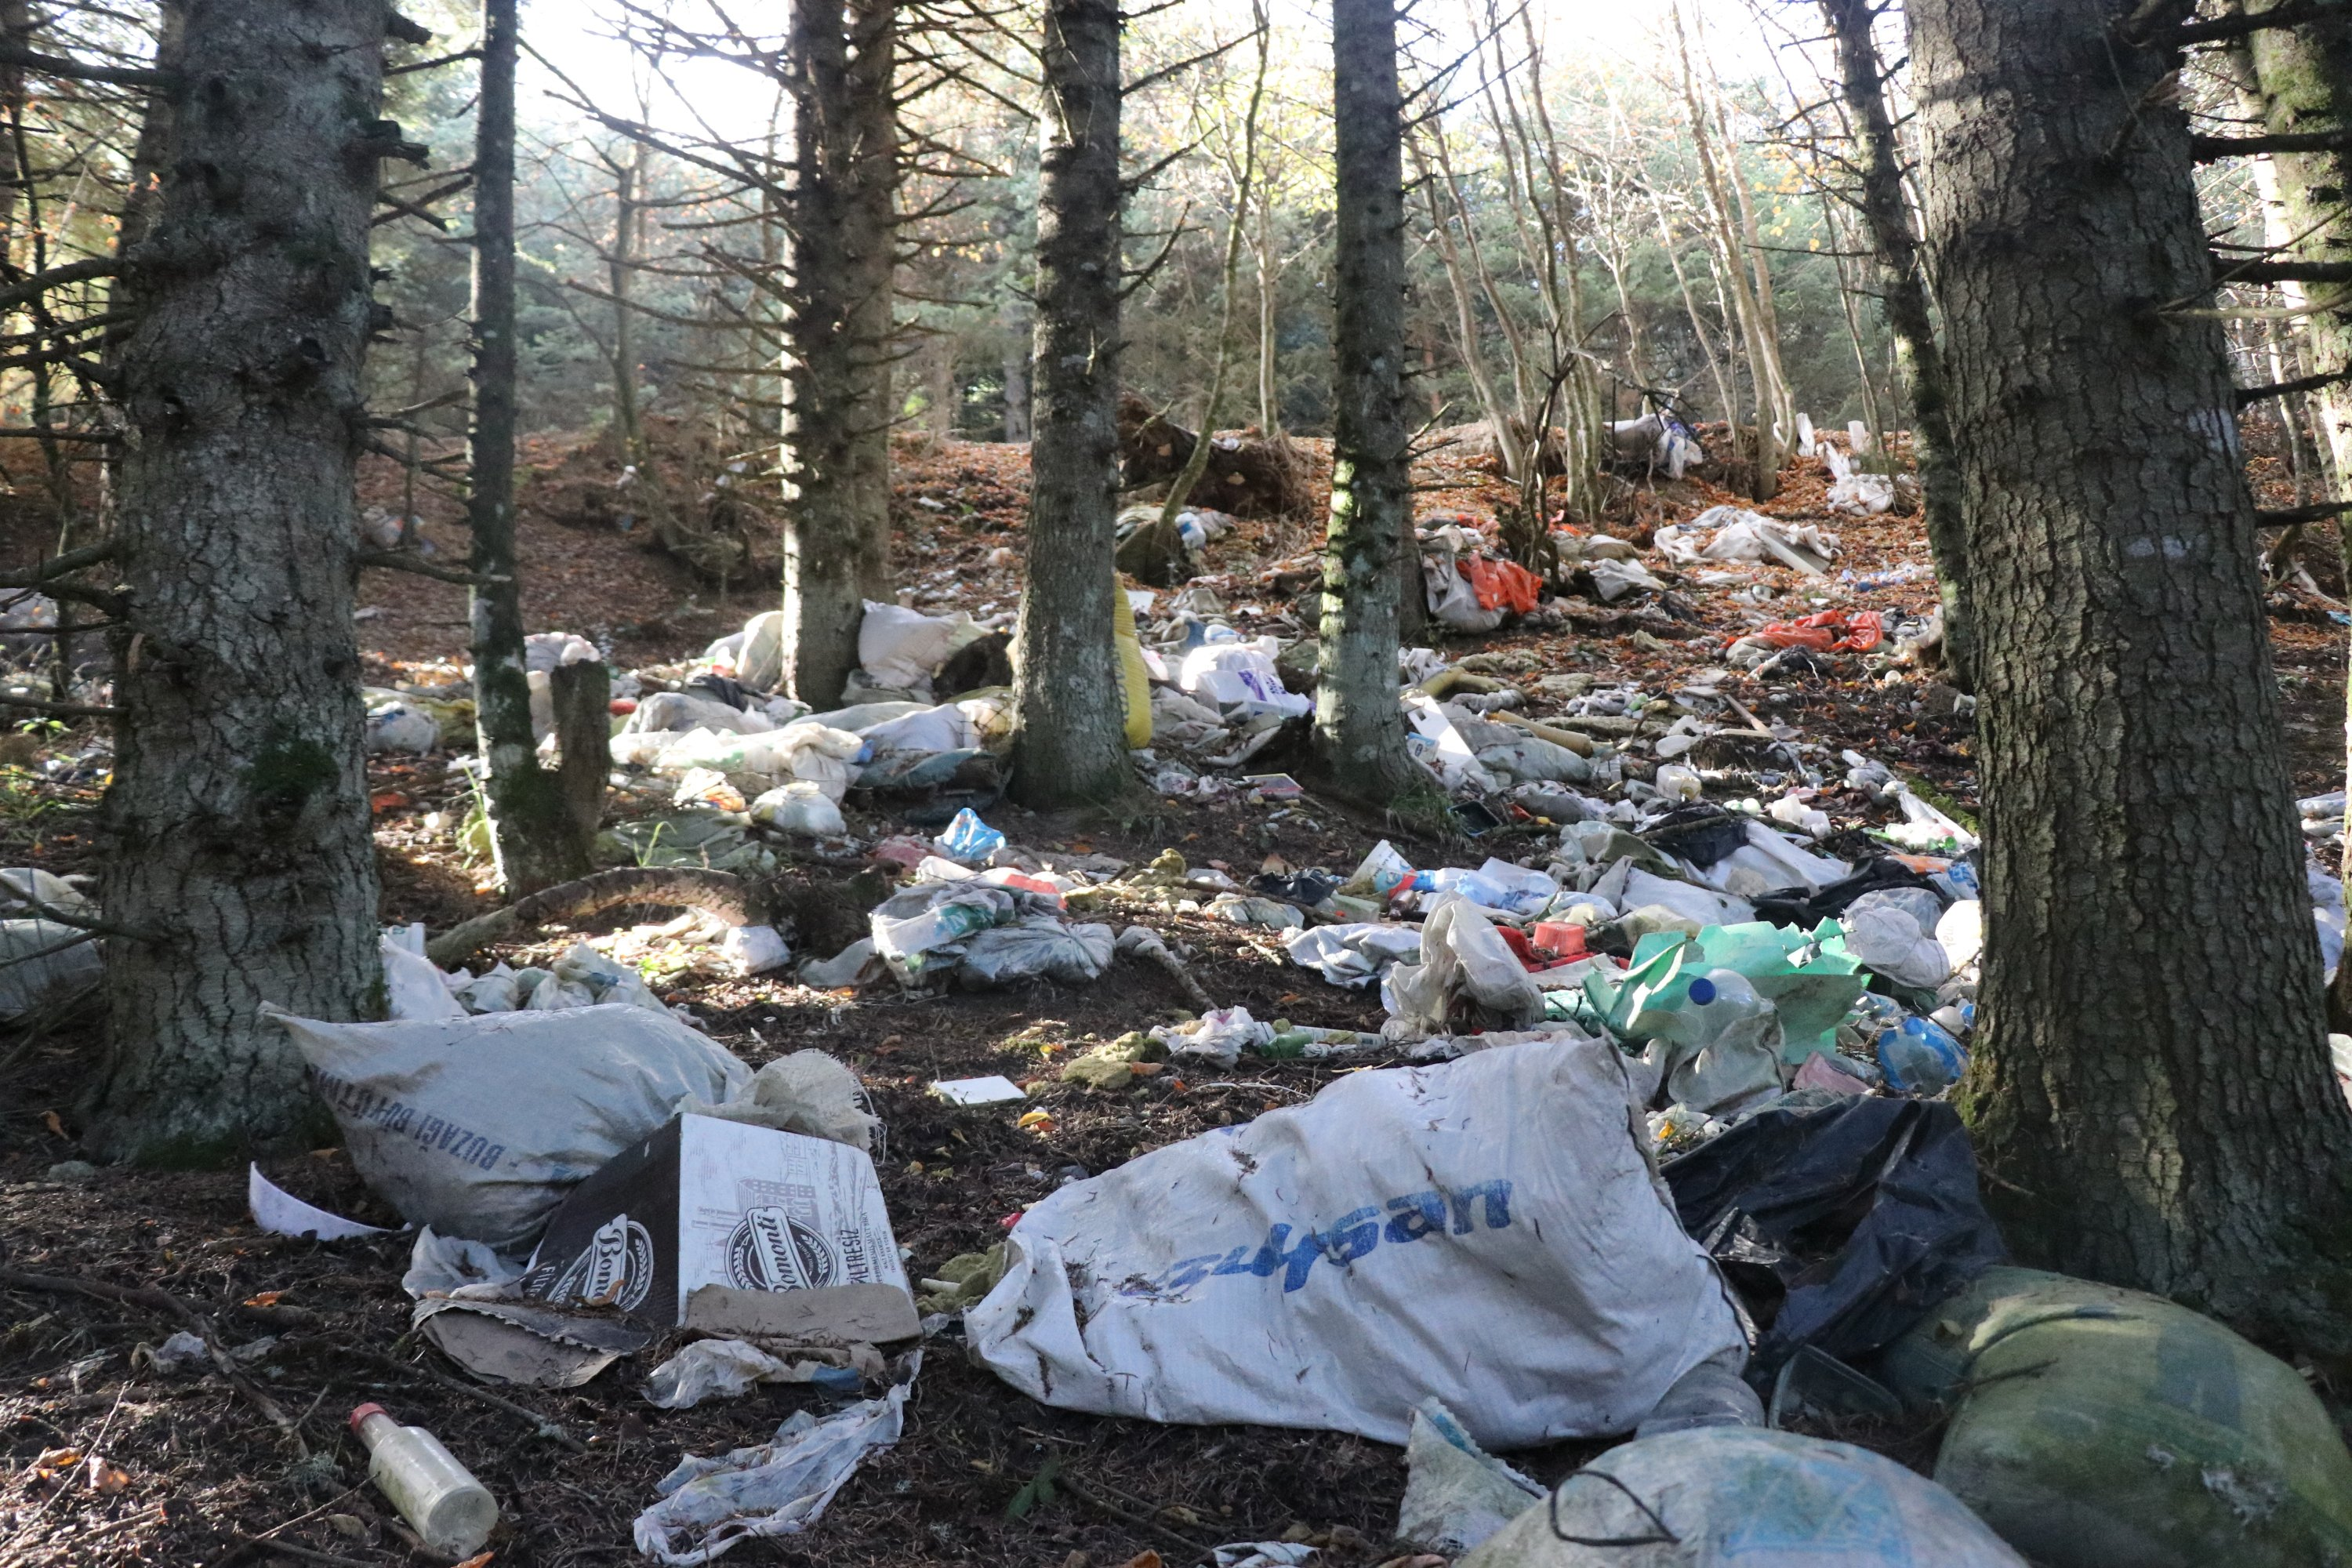 Heaps of trash left behind by picnickers are in a forest in Bolu, northwestern Turkey, amid the coronavirus pandemic, Nov. 30, 2020. (IHA Photo)